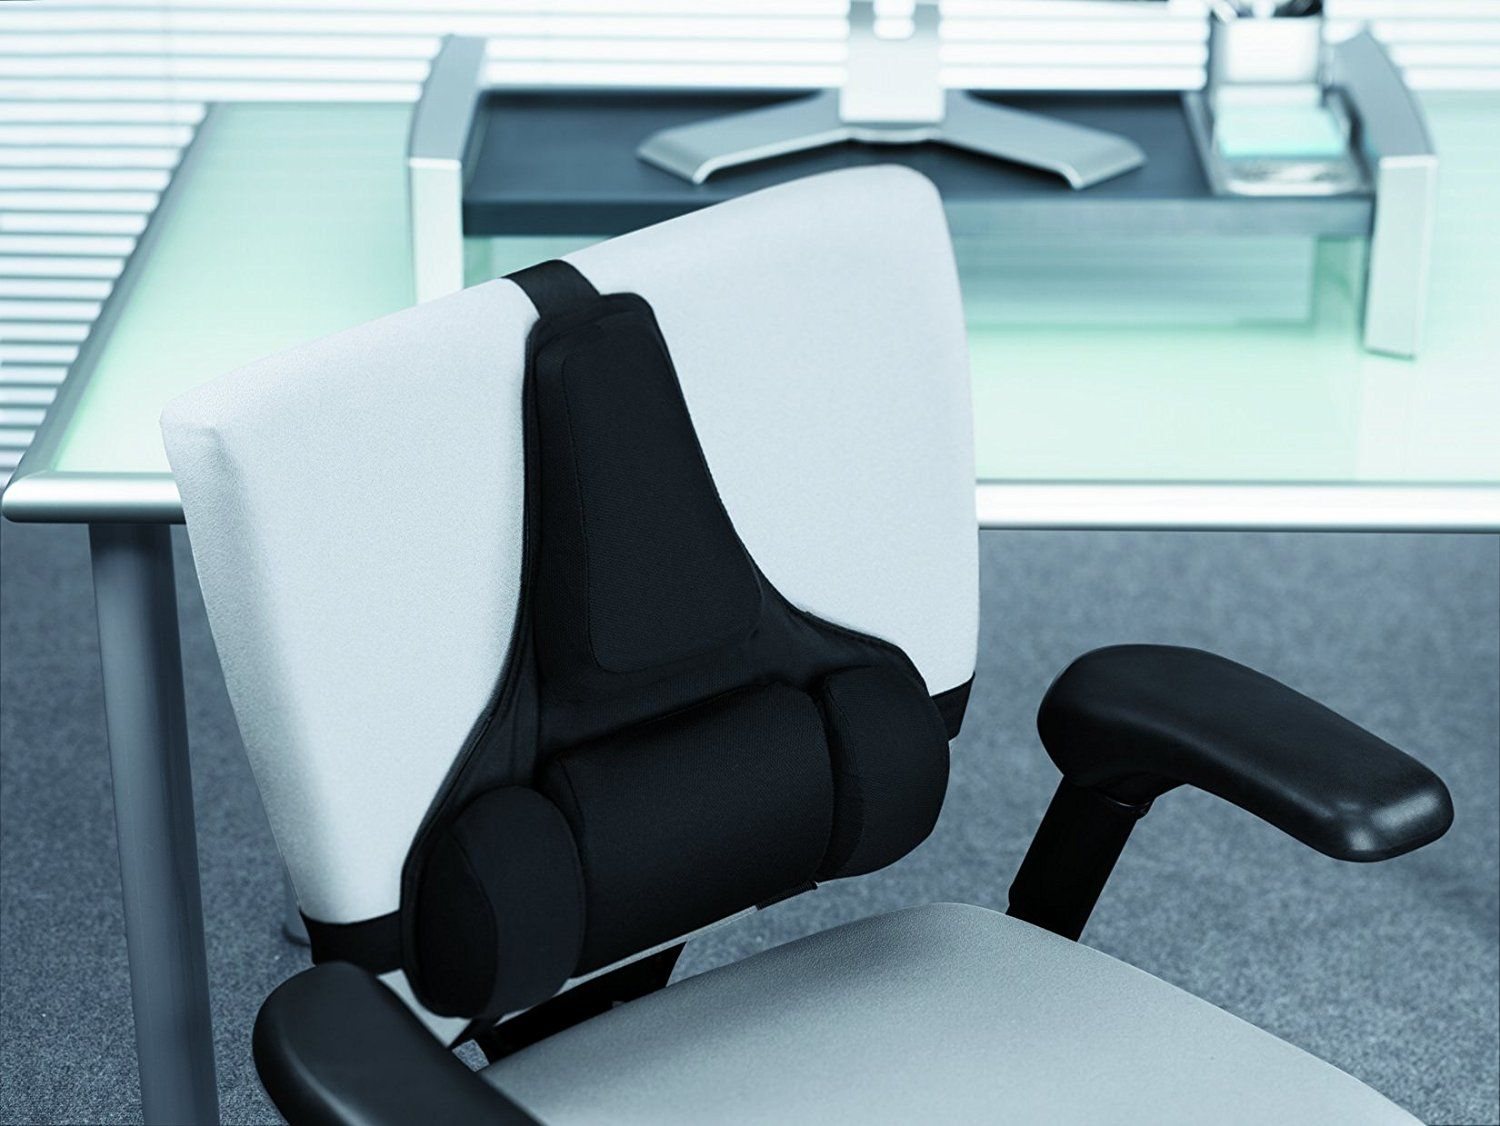 Best Seat Cushion For Office Chair For Sale